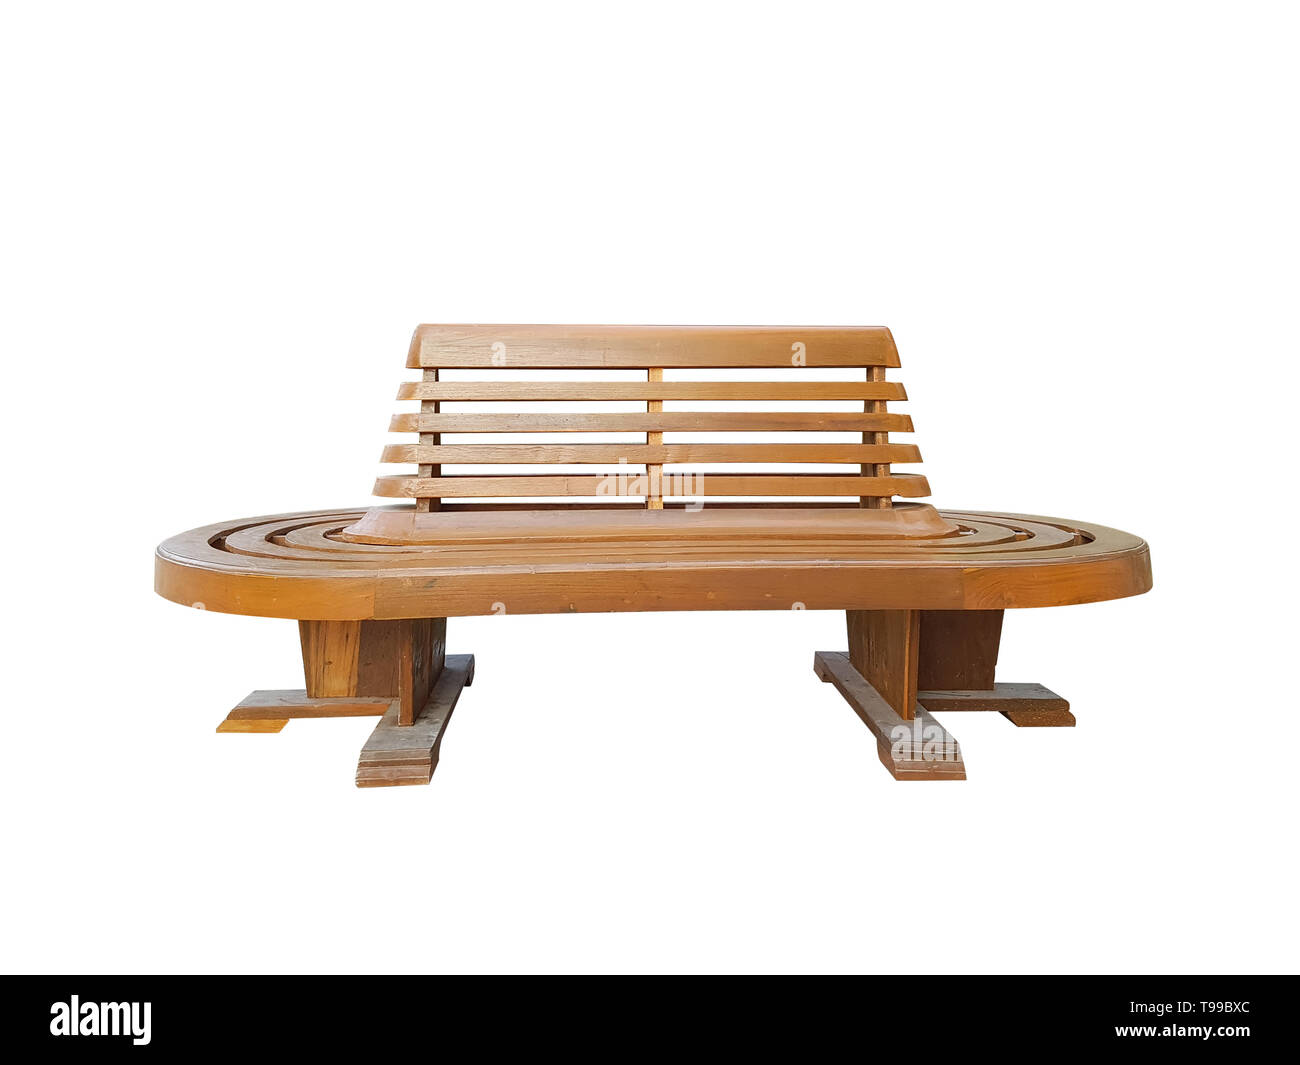 wooden bench isolated on white background with clipping path. wooden bench waiting chair for the train at the railway station platform, front view - Stock Image